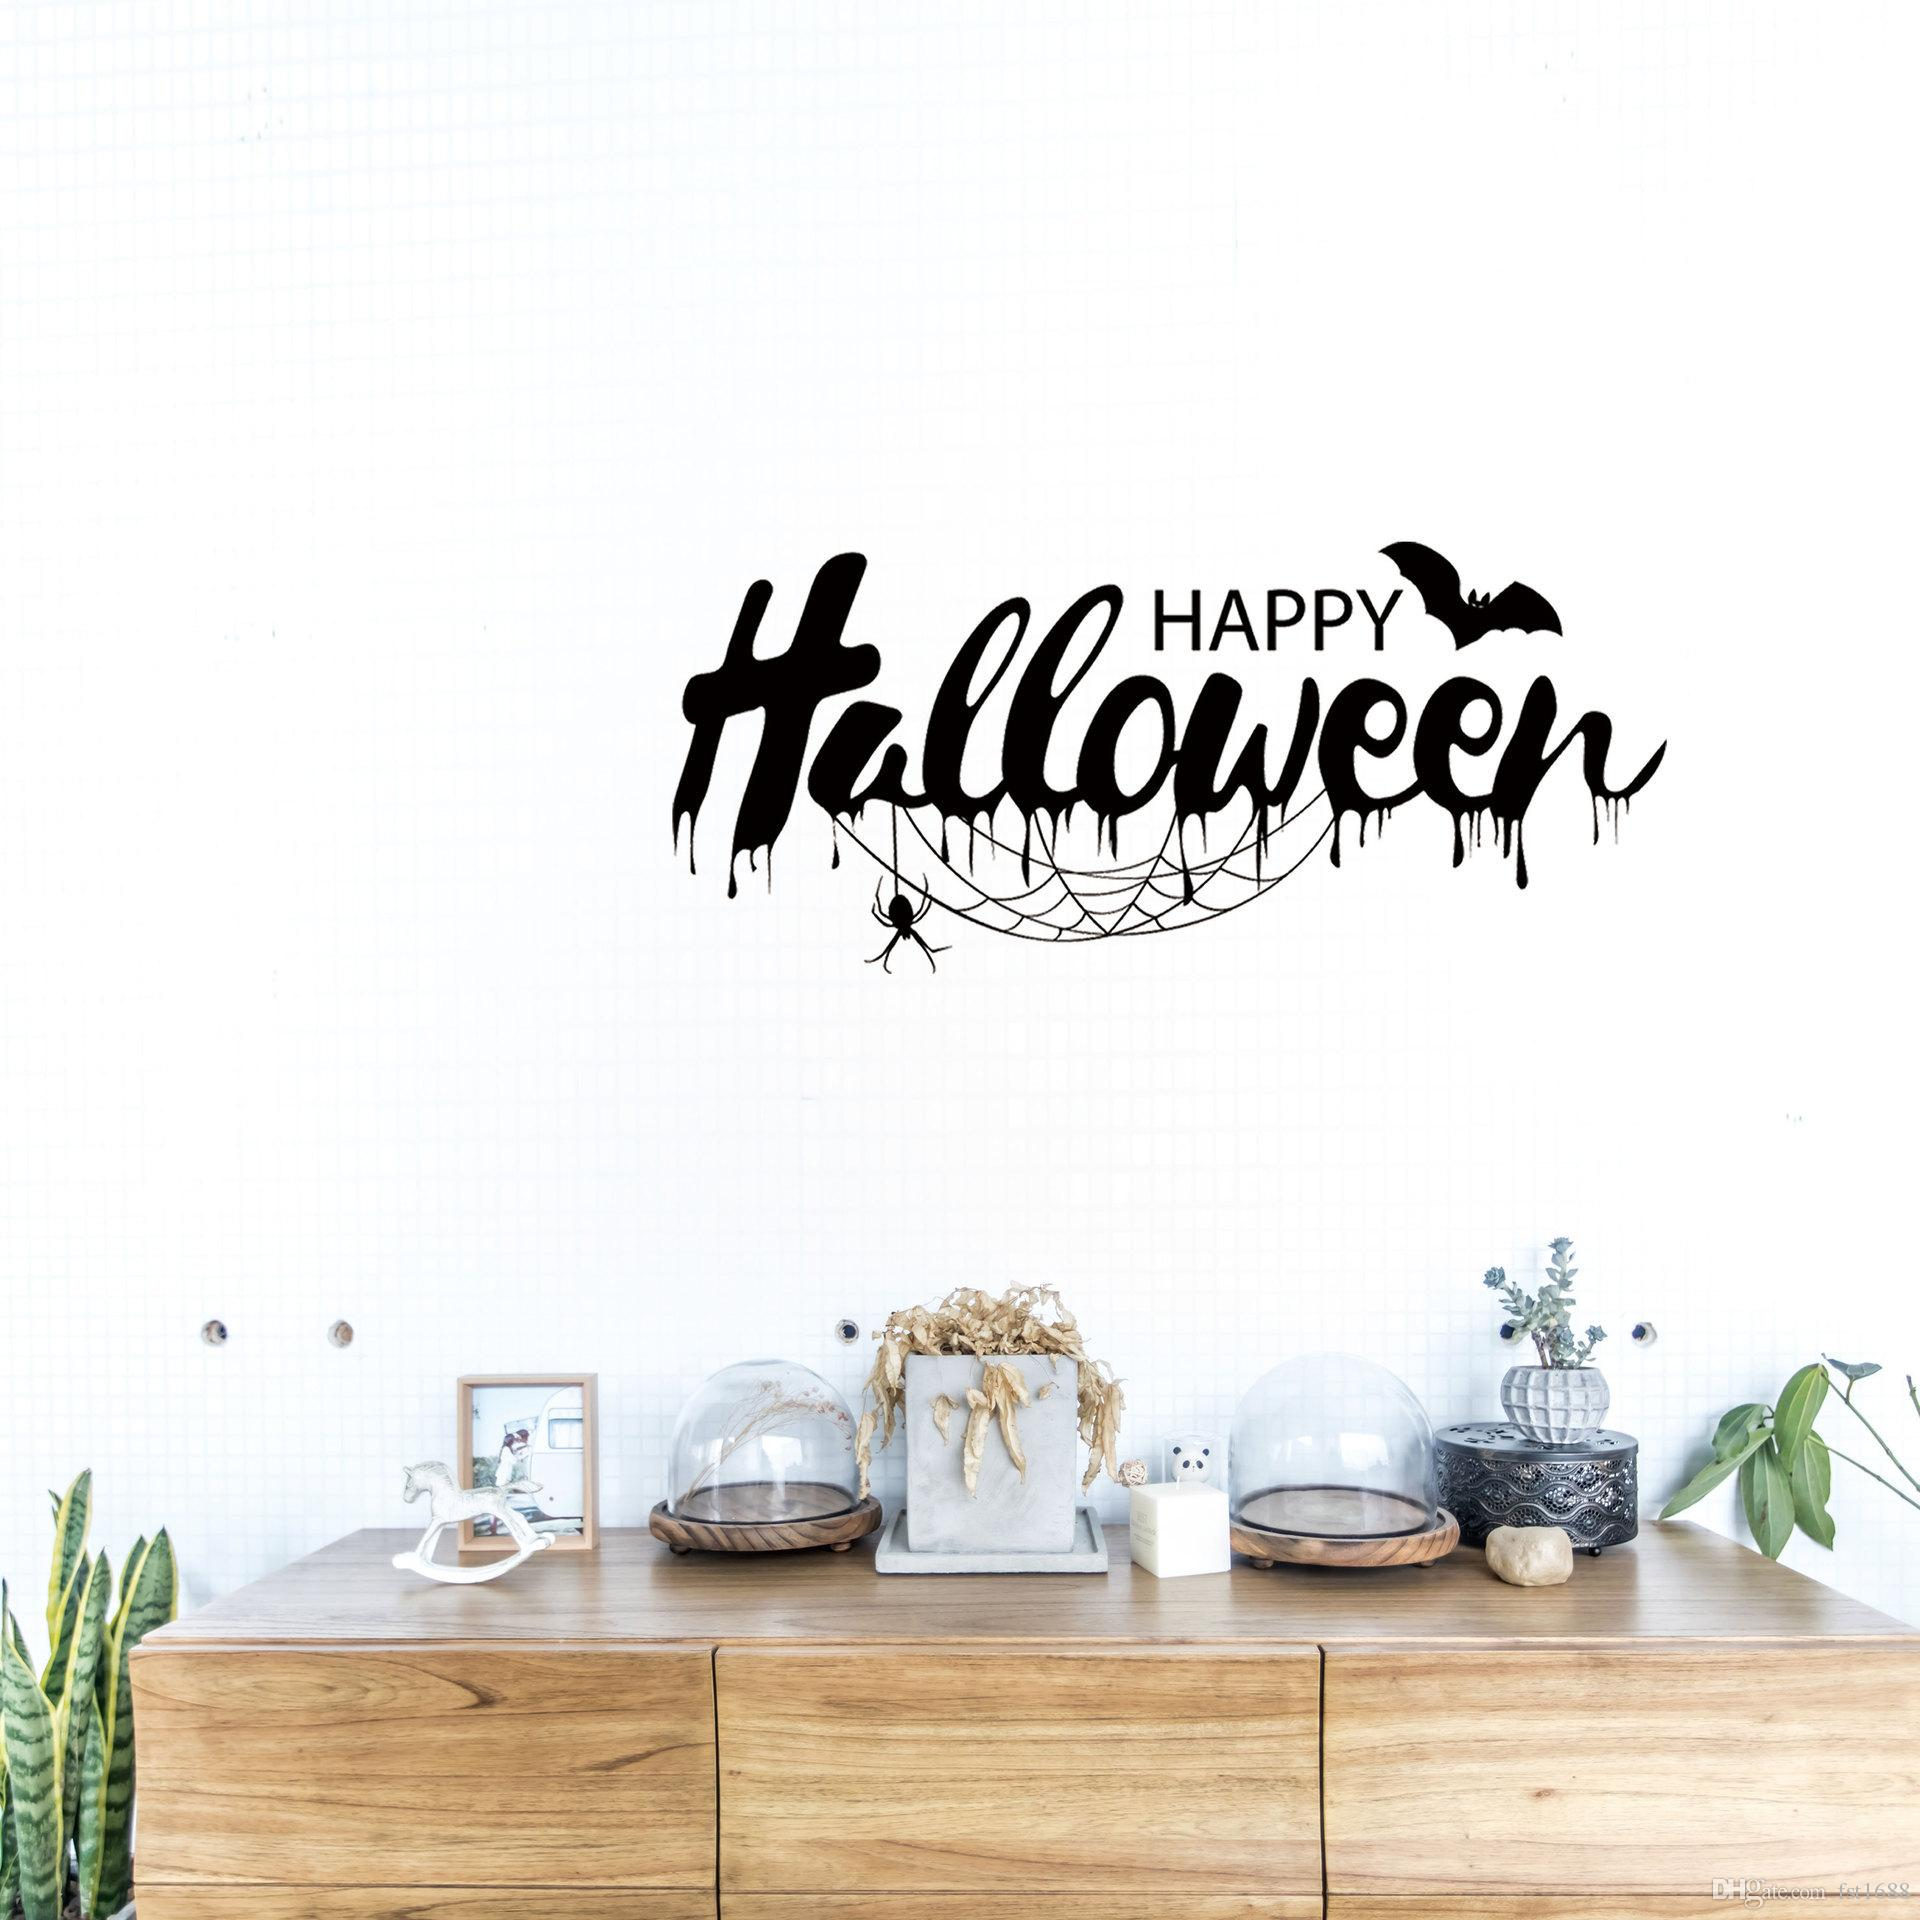 bat living room dark wooden floors diy creative quotes happy halloween festival sticker poster party window bedroom home decoration gift vinyl decal wall art